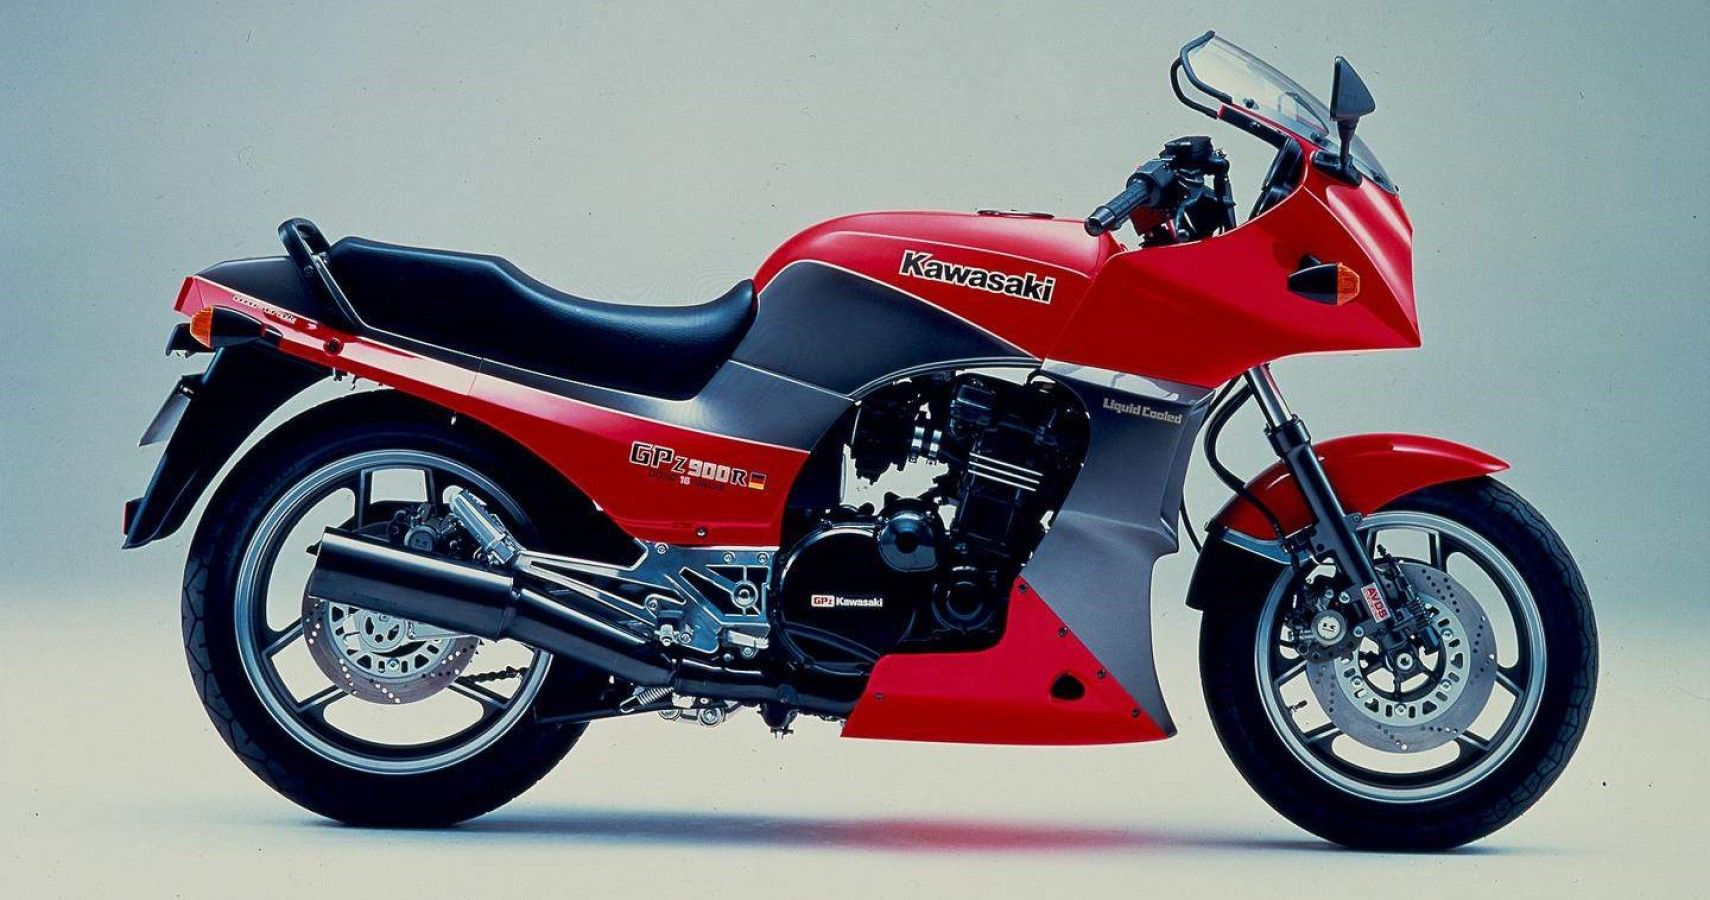 Here's What Made The Kawasaki GPZ900R Special | HotCars